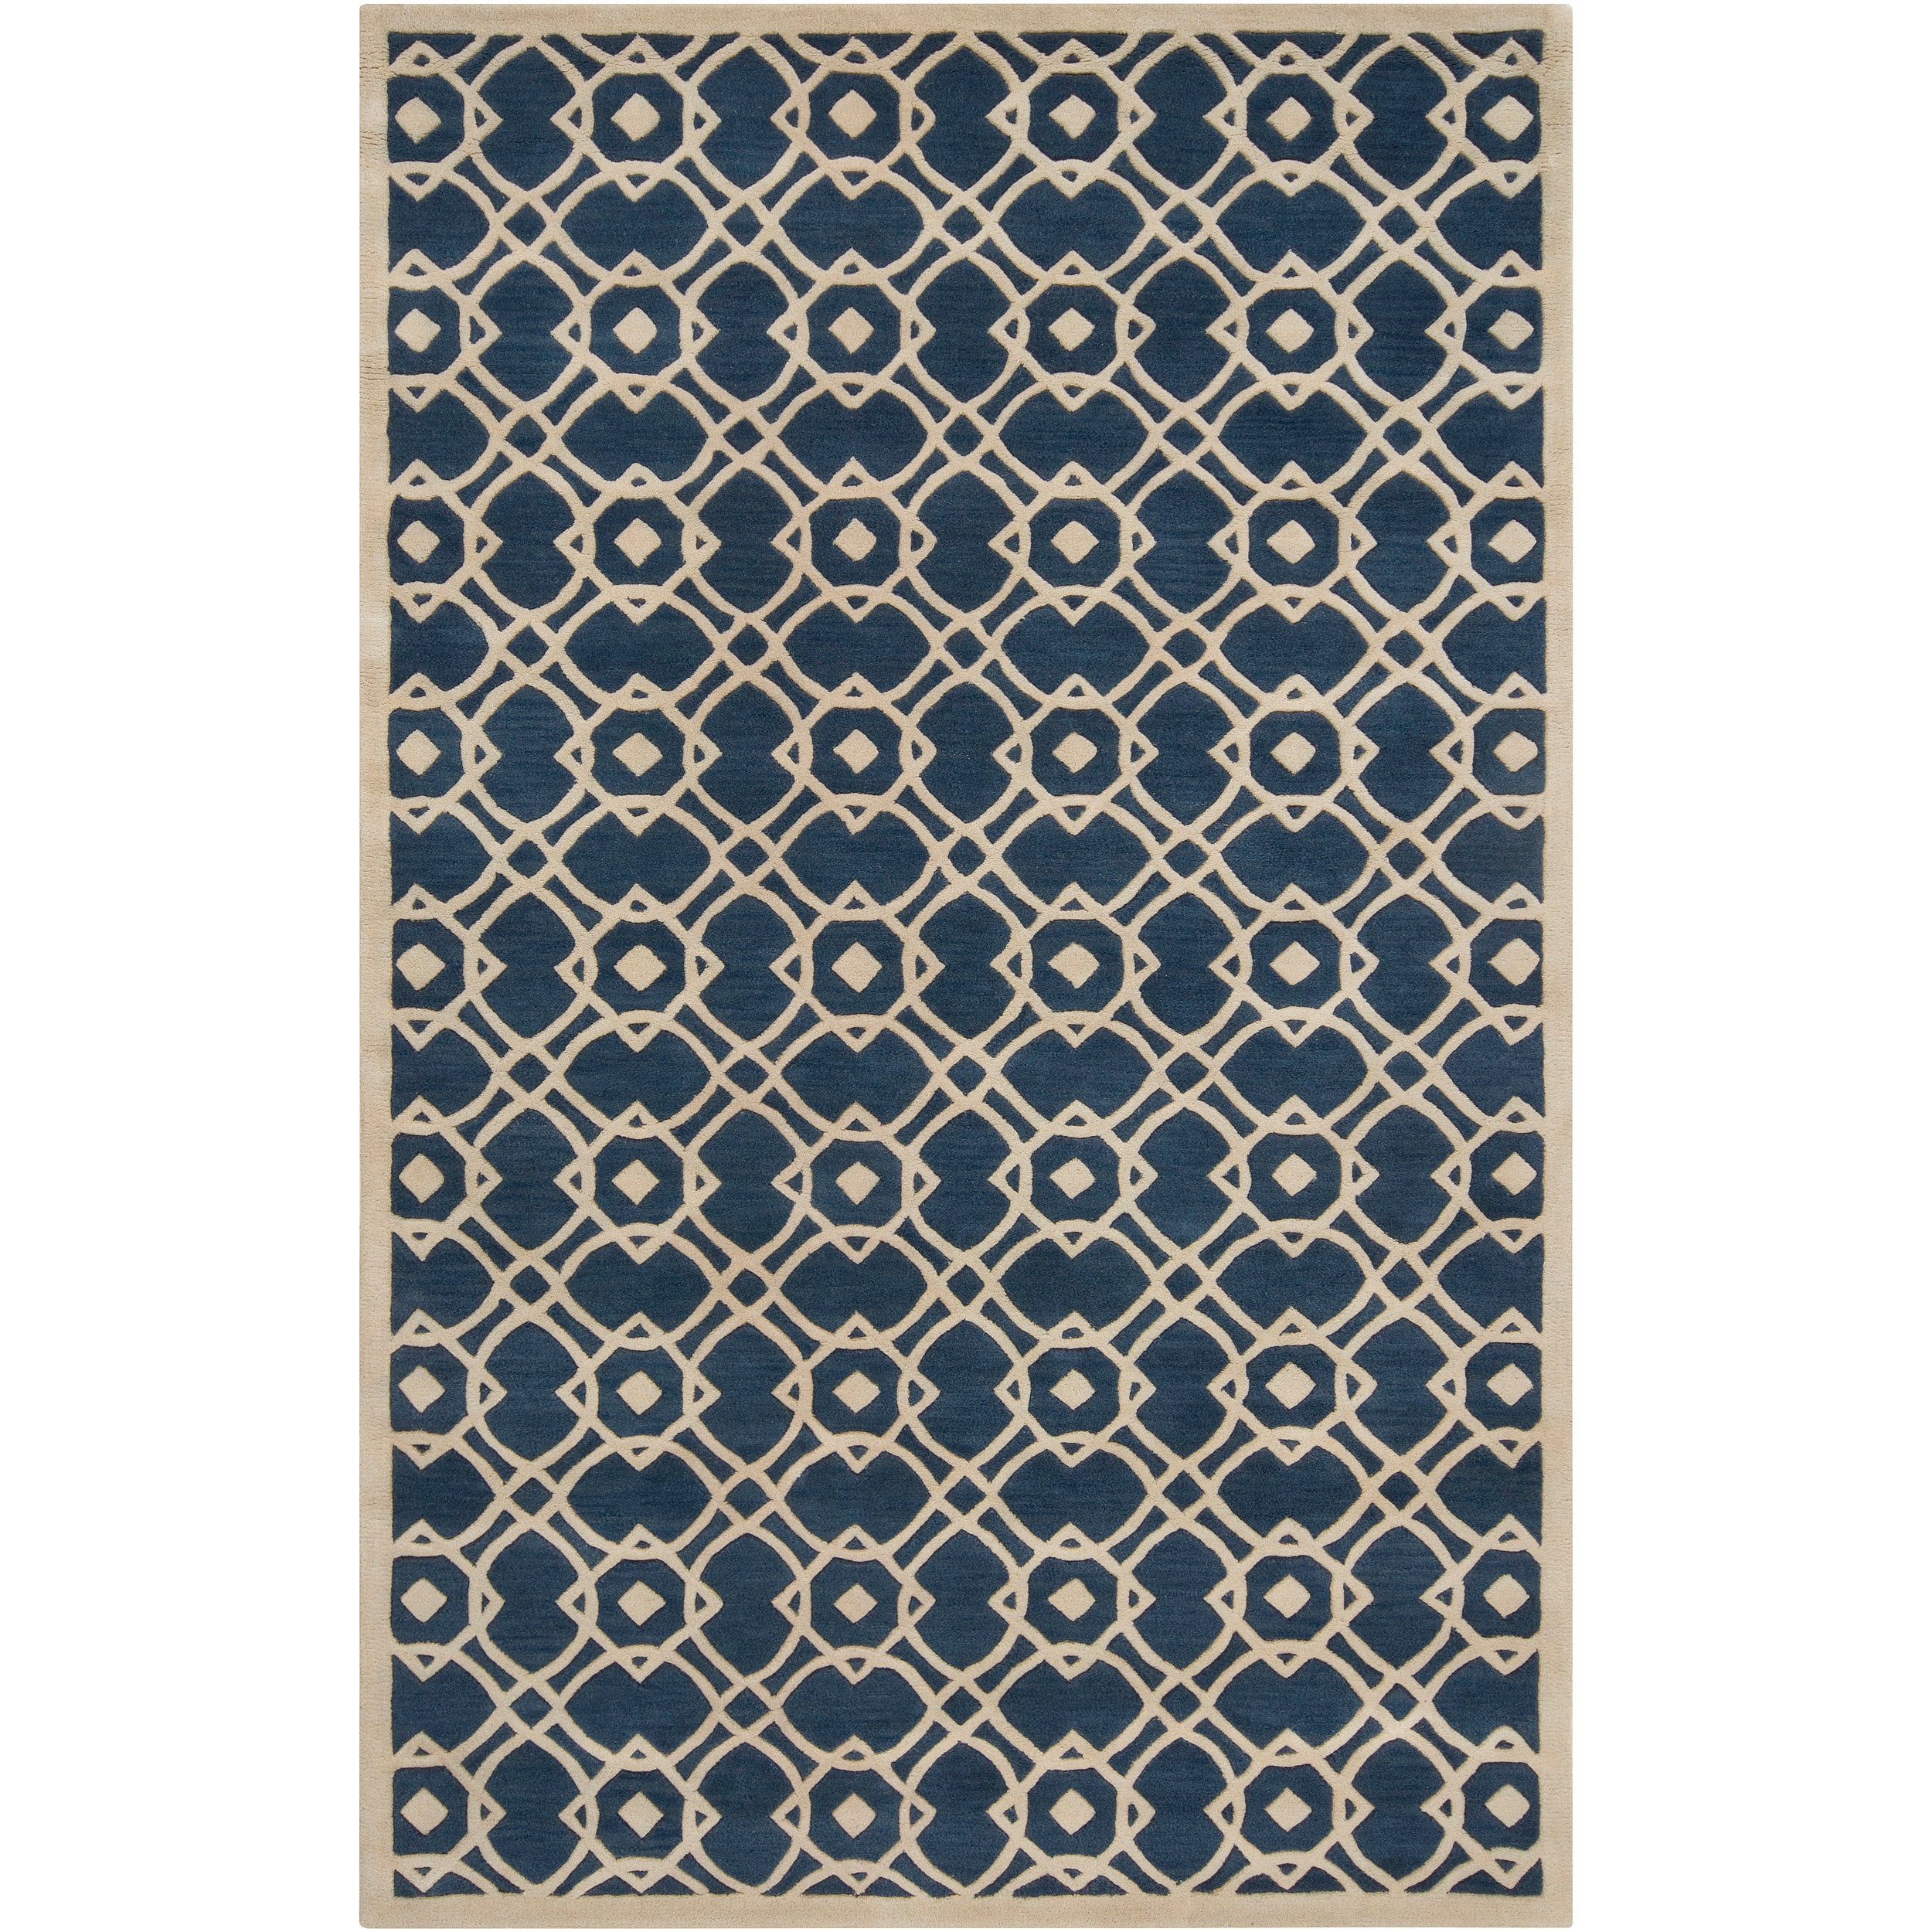 Hand-tufted 'Grandeur' Blue New Zealand Wool Rug (5' x 8') - Thumbnail 0